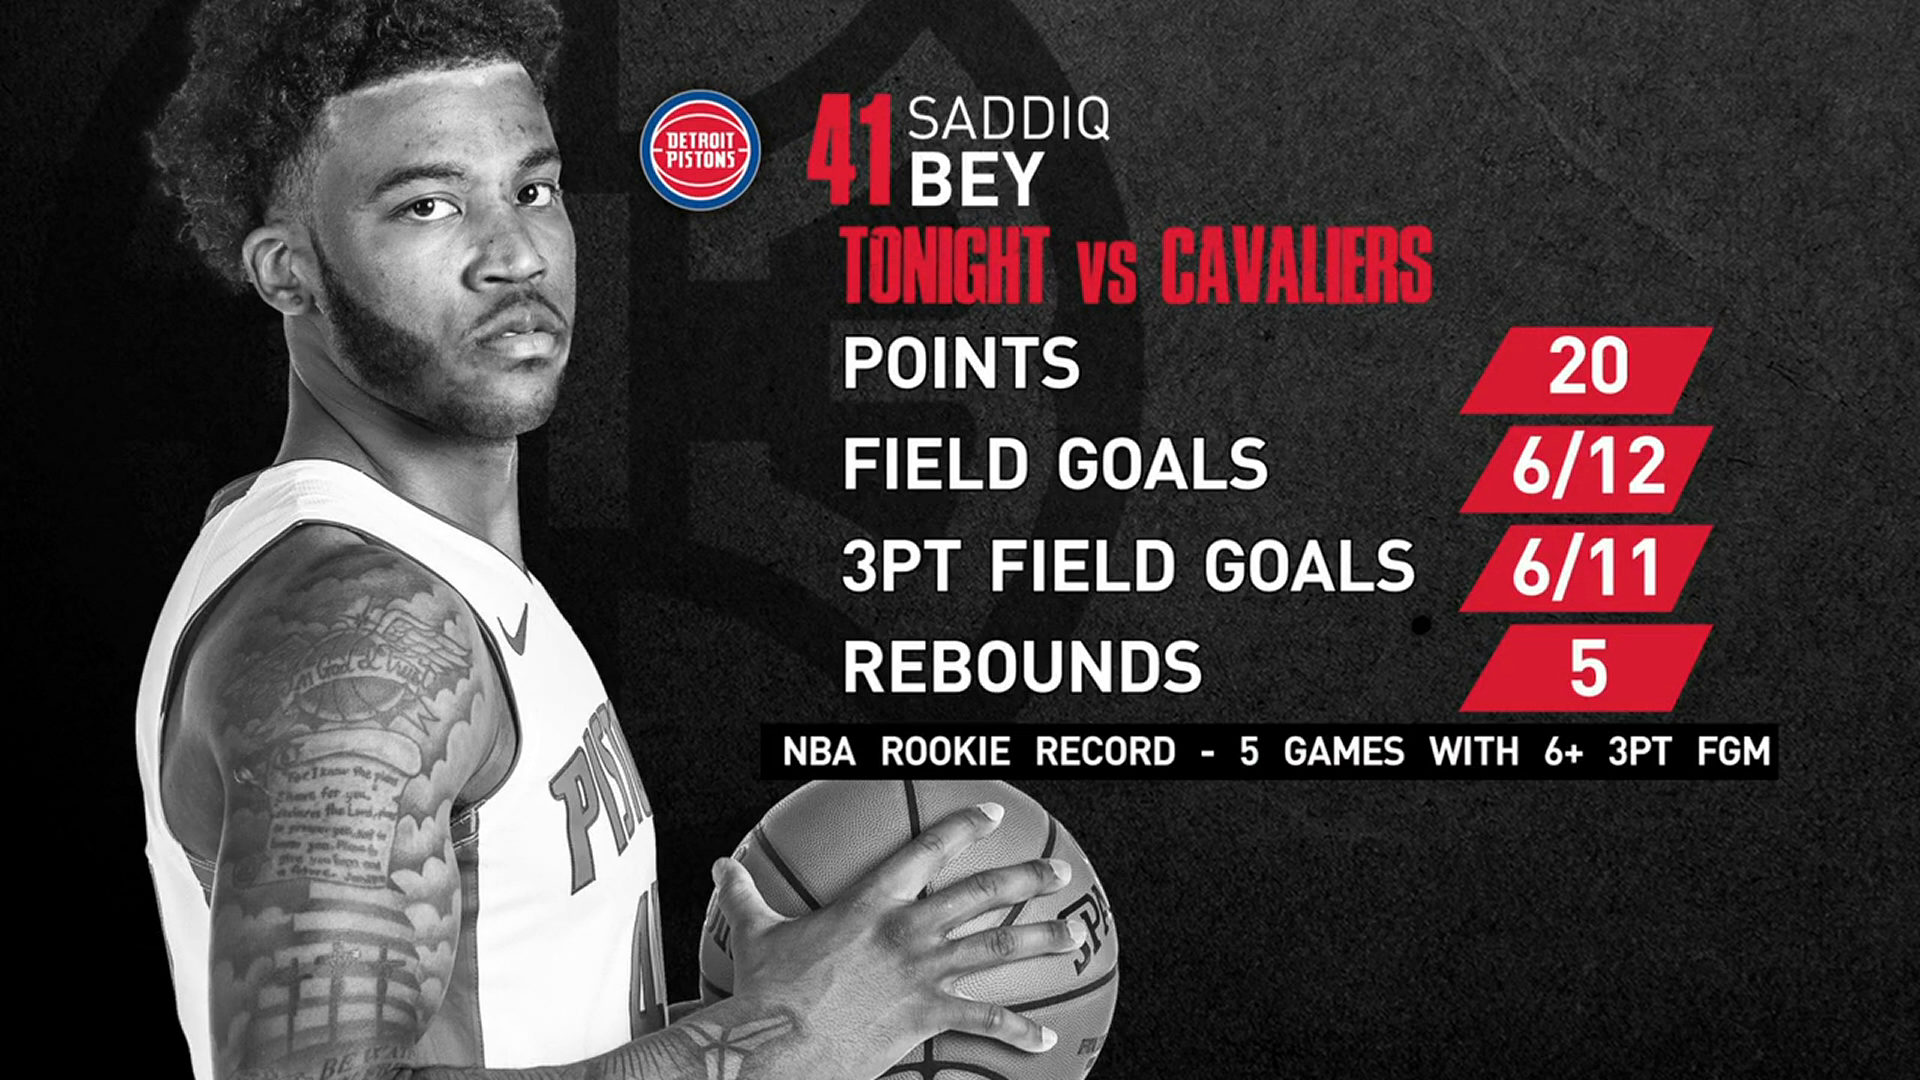 Saddiq Bey Highlights vs Cavaliers